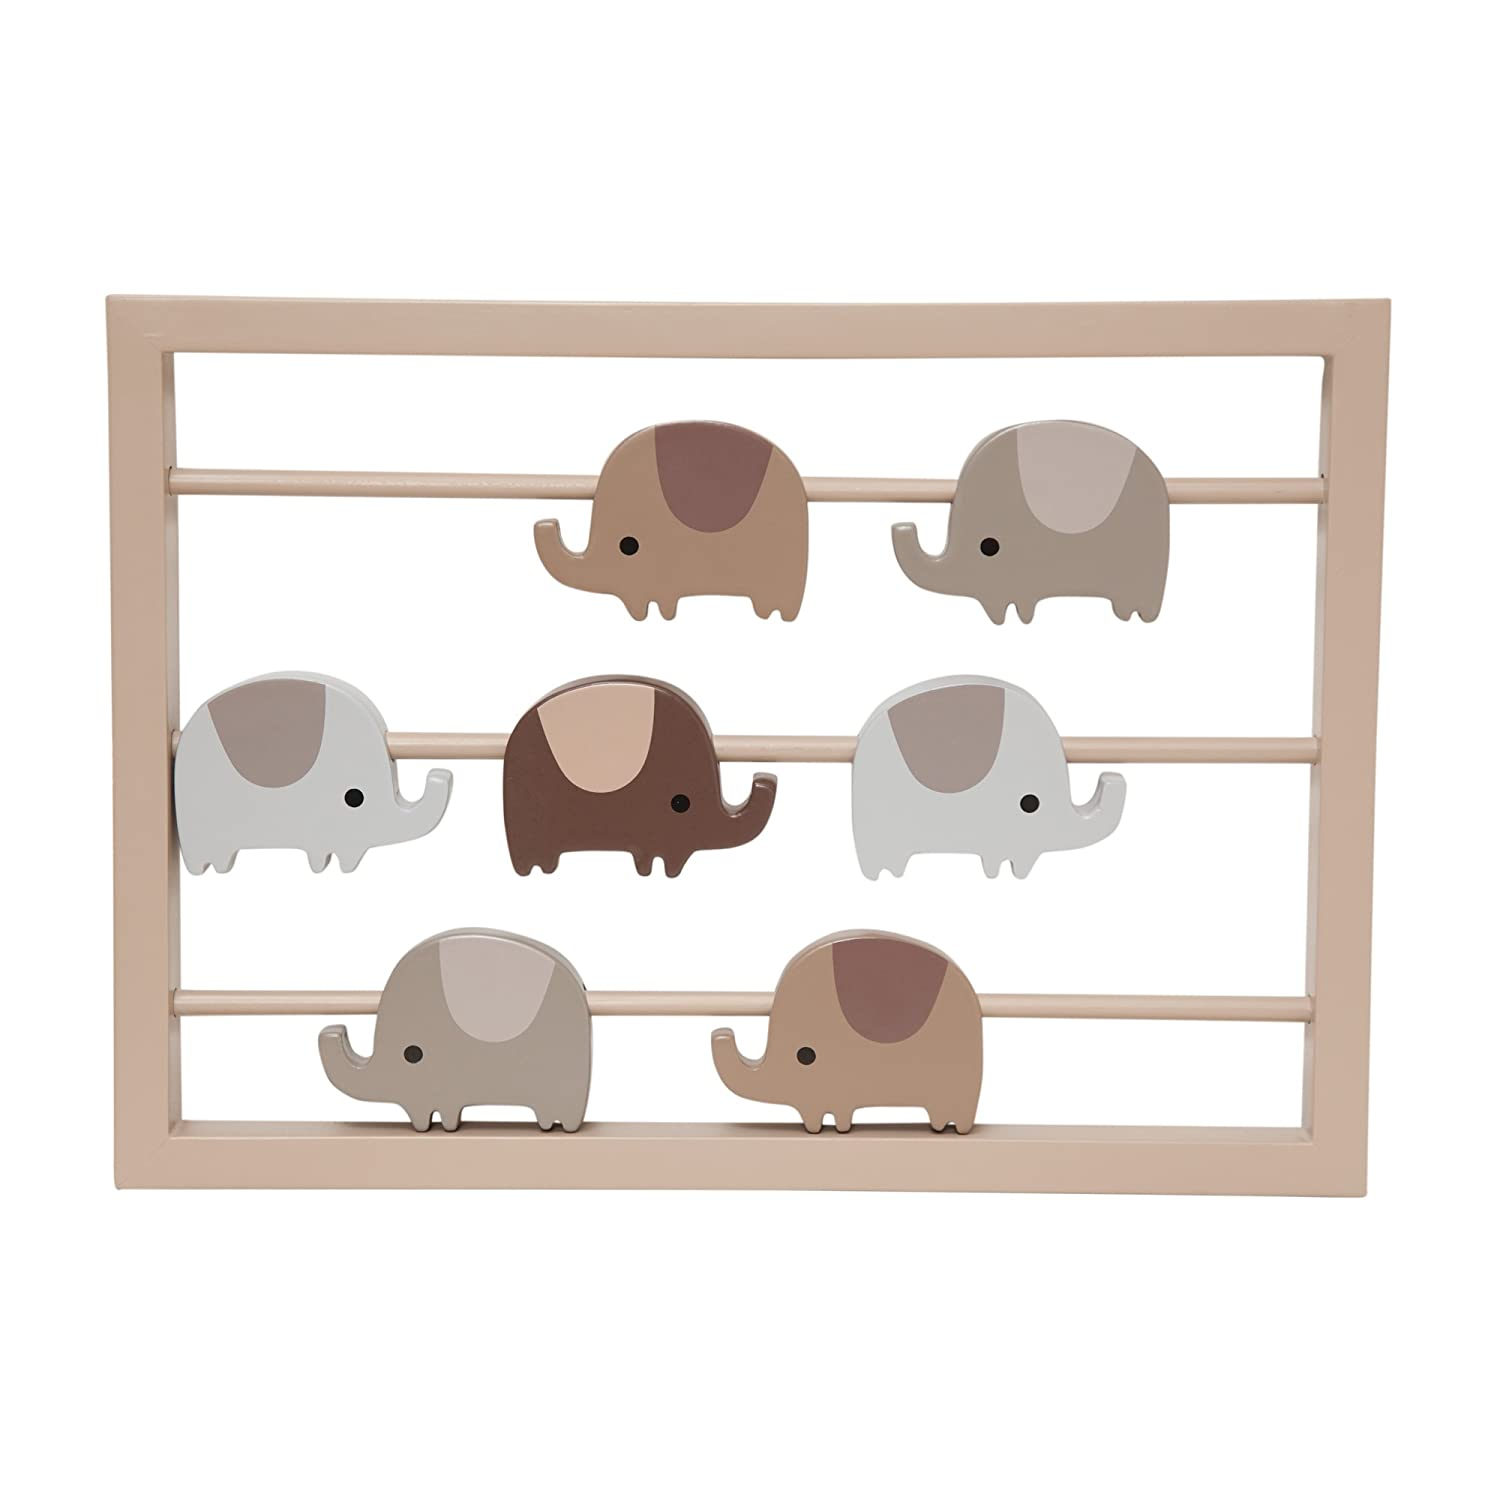 Hot Lambs & Ivy Oatmeal Cookie Wall Decor